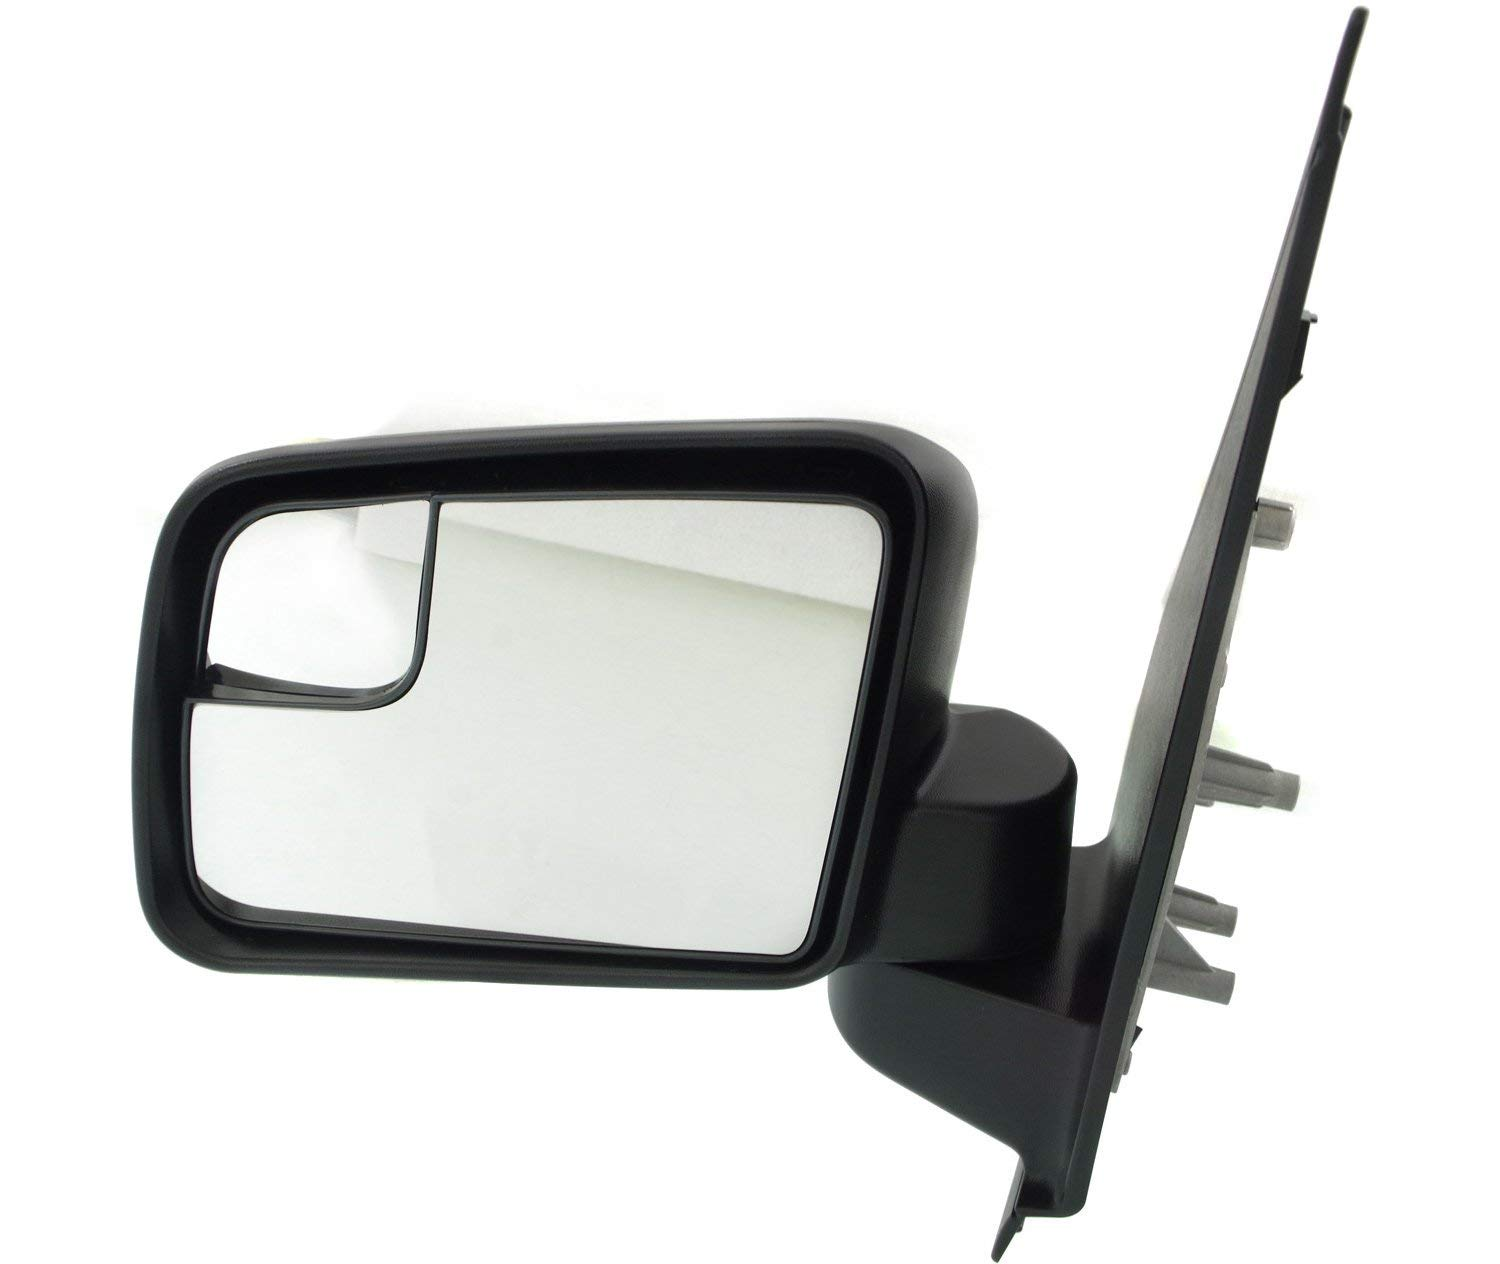 Mirror for FORD TRANSIT CONNECT 11-13 RH Power Manual Folding From 10-4-10 Textured Black Kool Vue